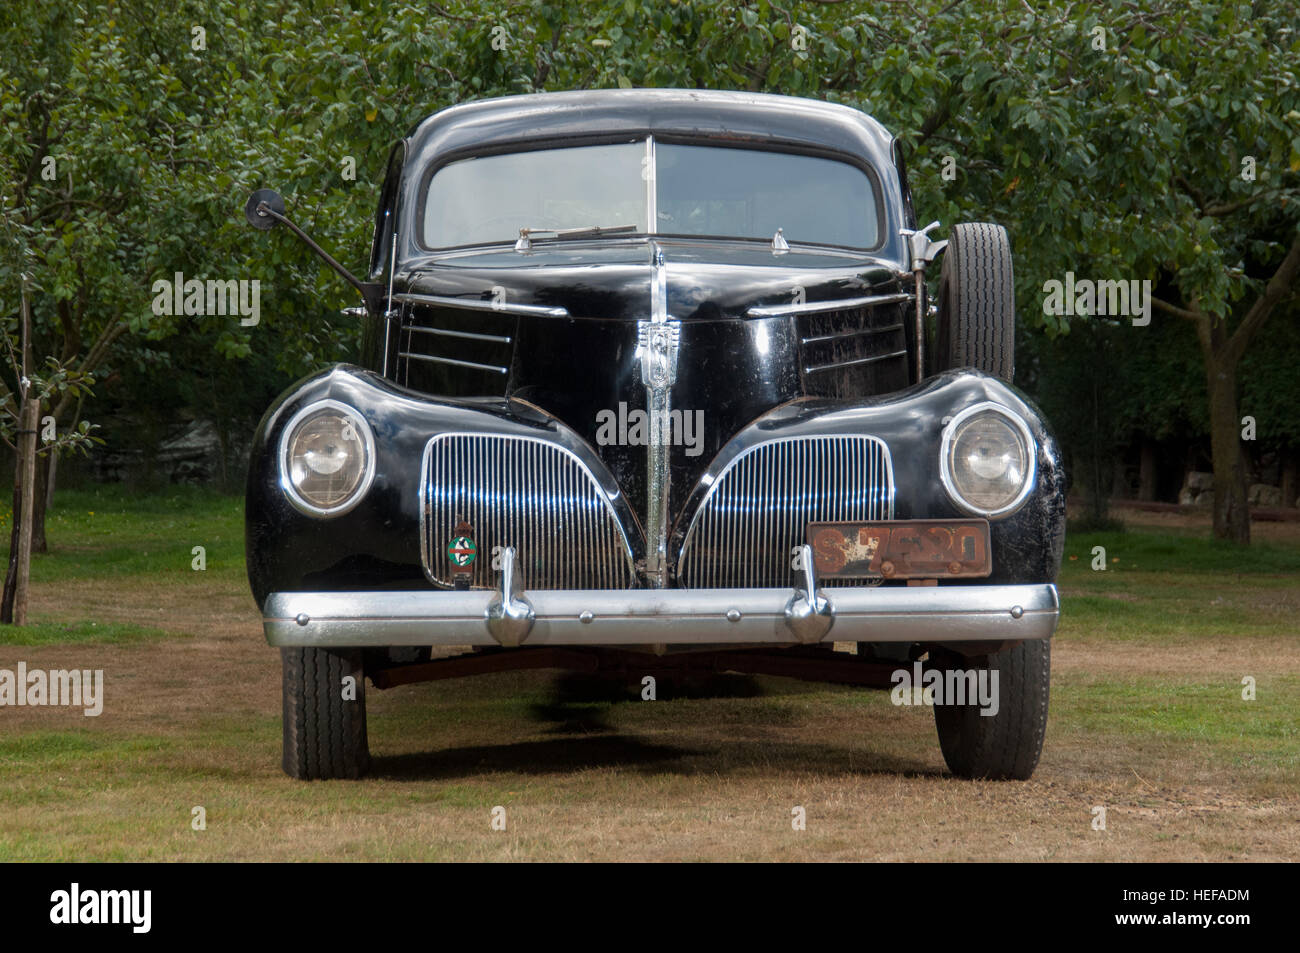 1938 Studebaker Classic American pick up truck - the worlds first ...